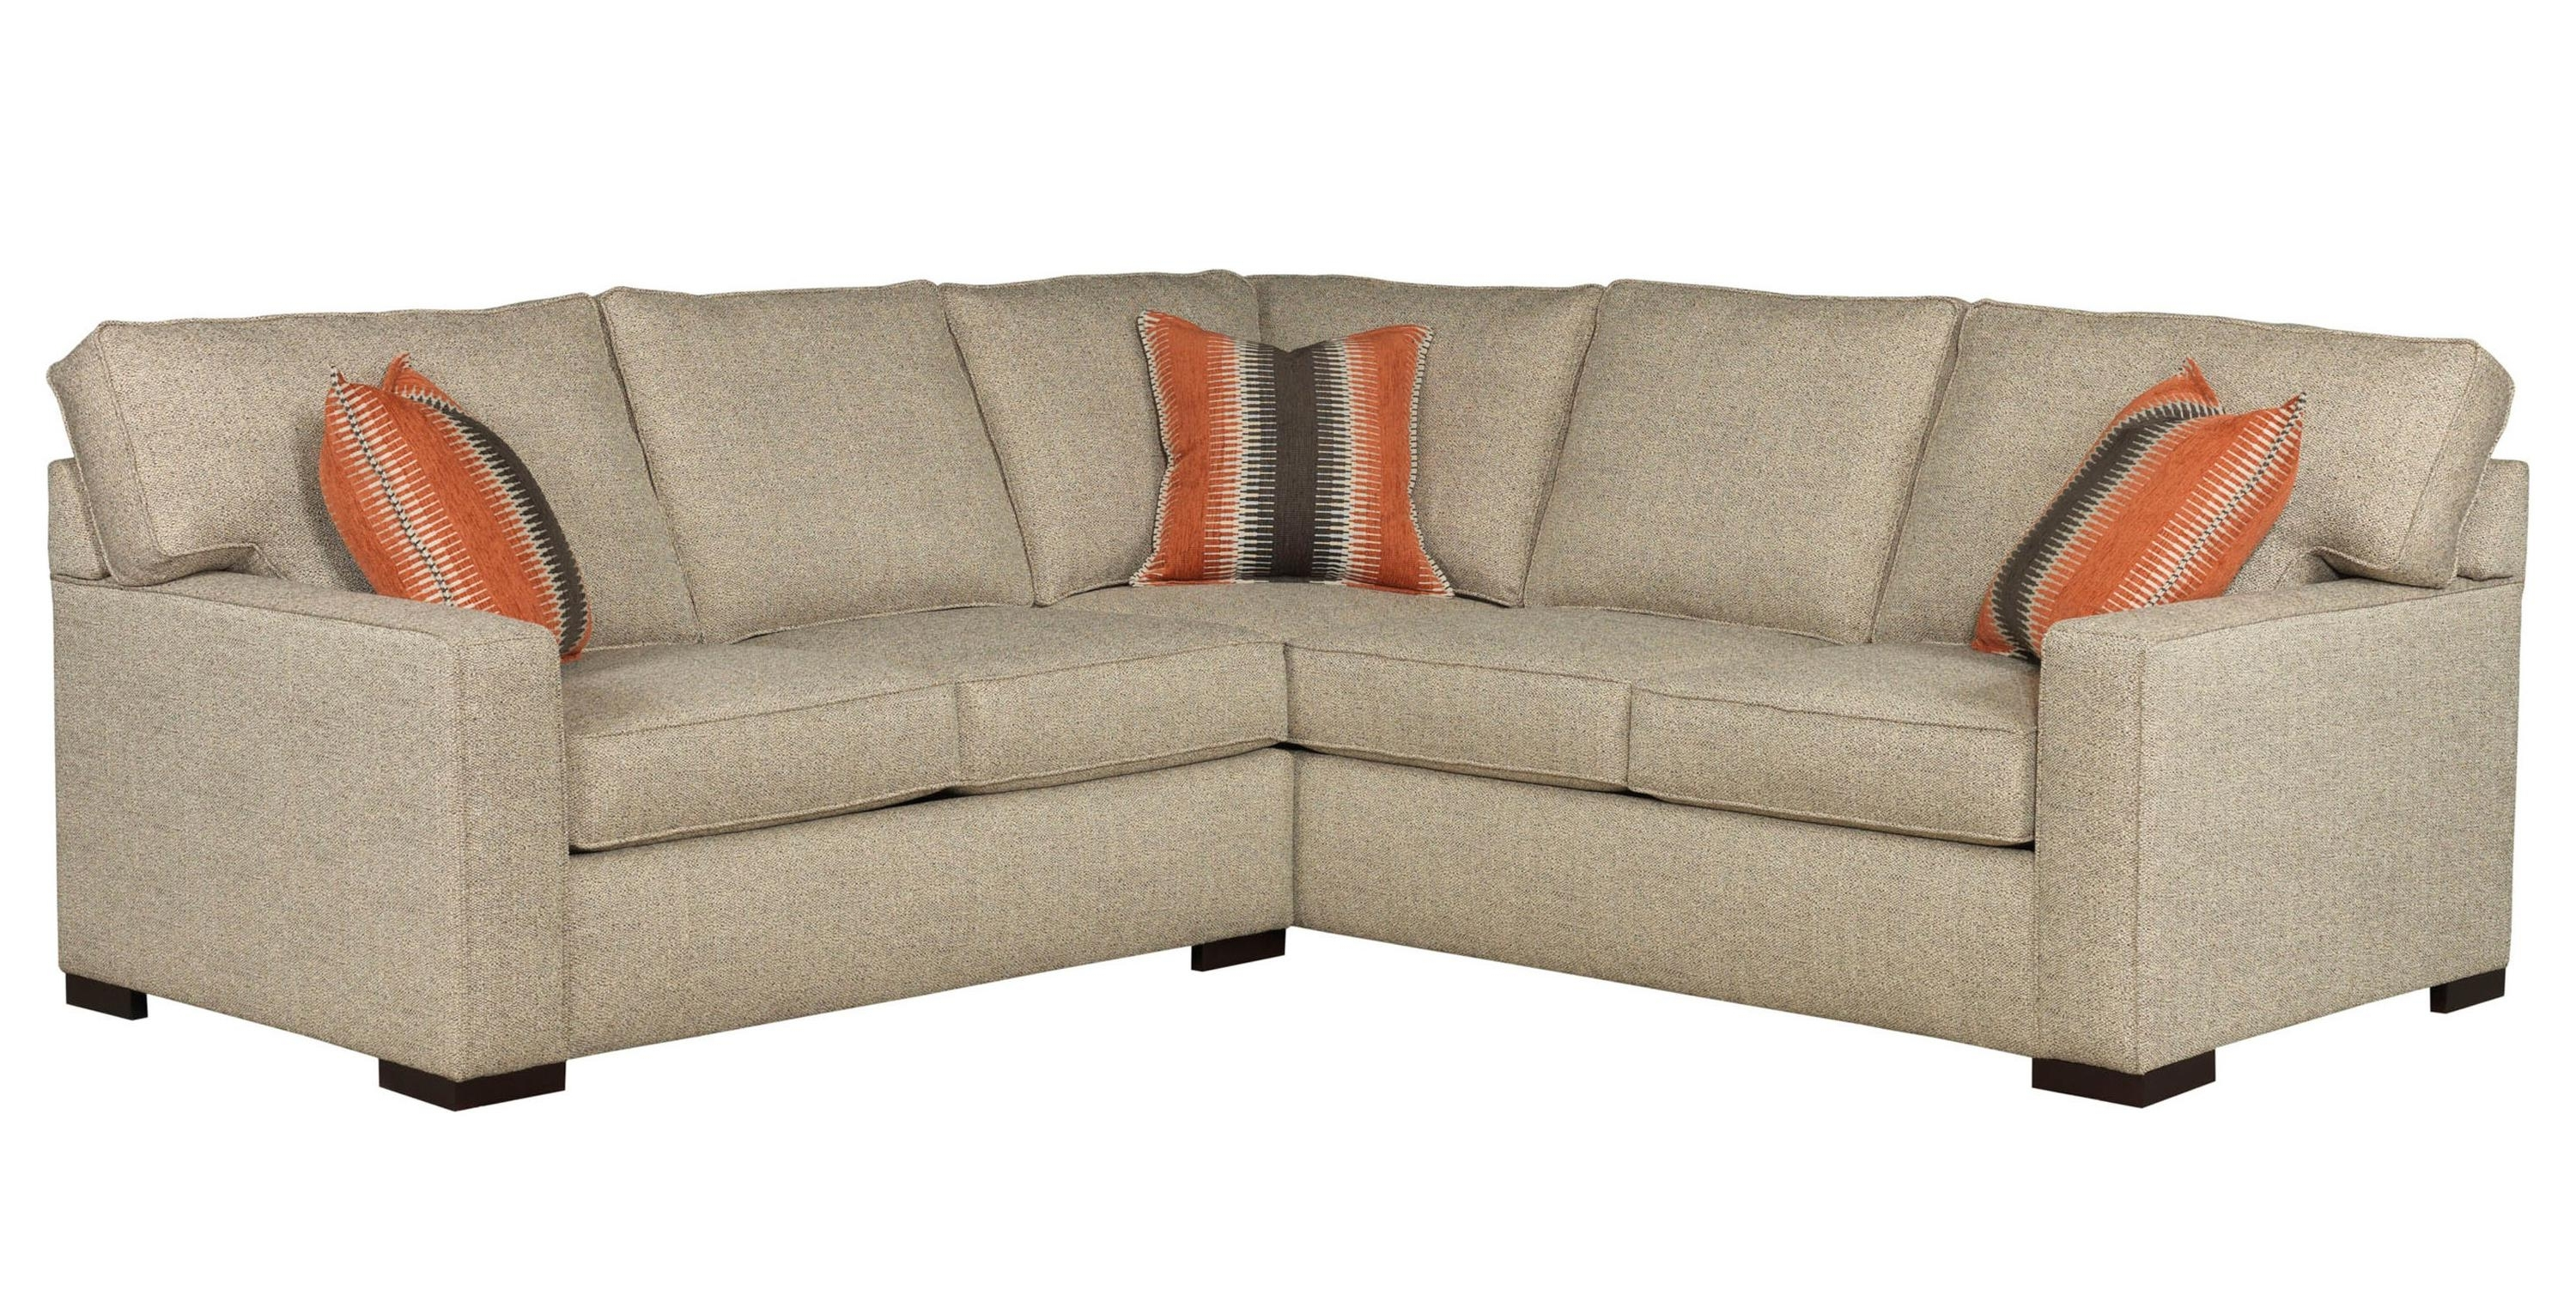 Broyhill Furniture Raphael Contemporary Two Piece Sectional Sofa Pertaining To Trendy Panama City Fl Sectional Sofas (View 4 of 20)